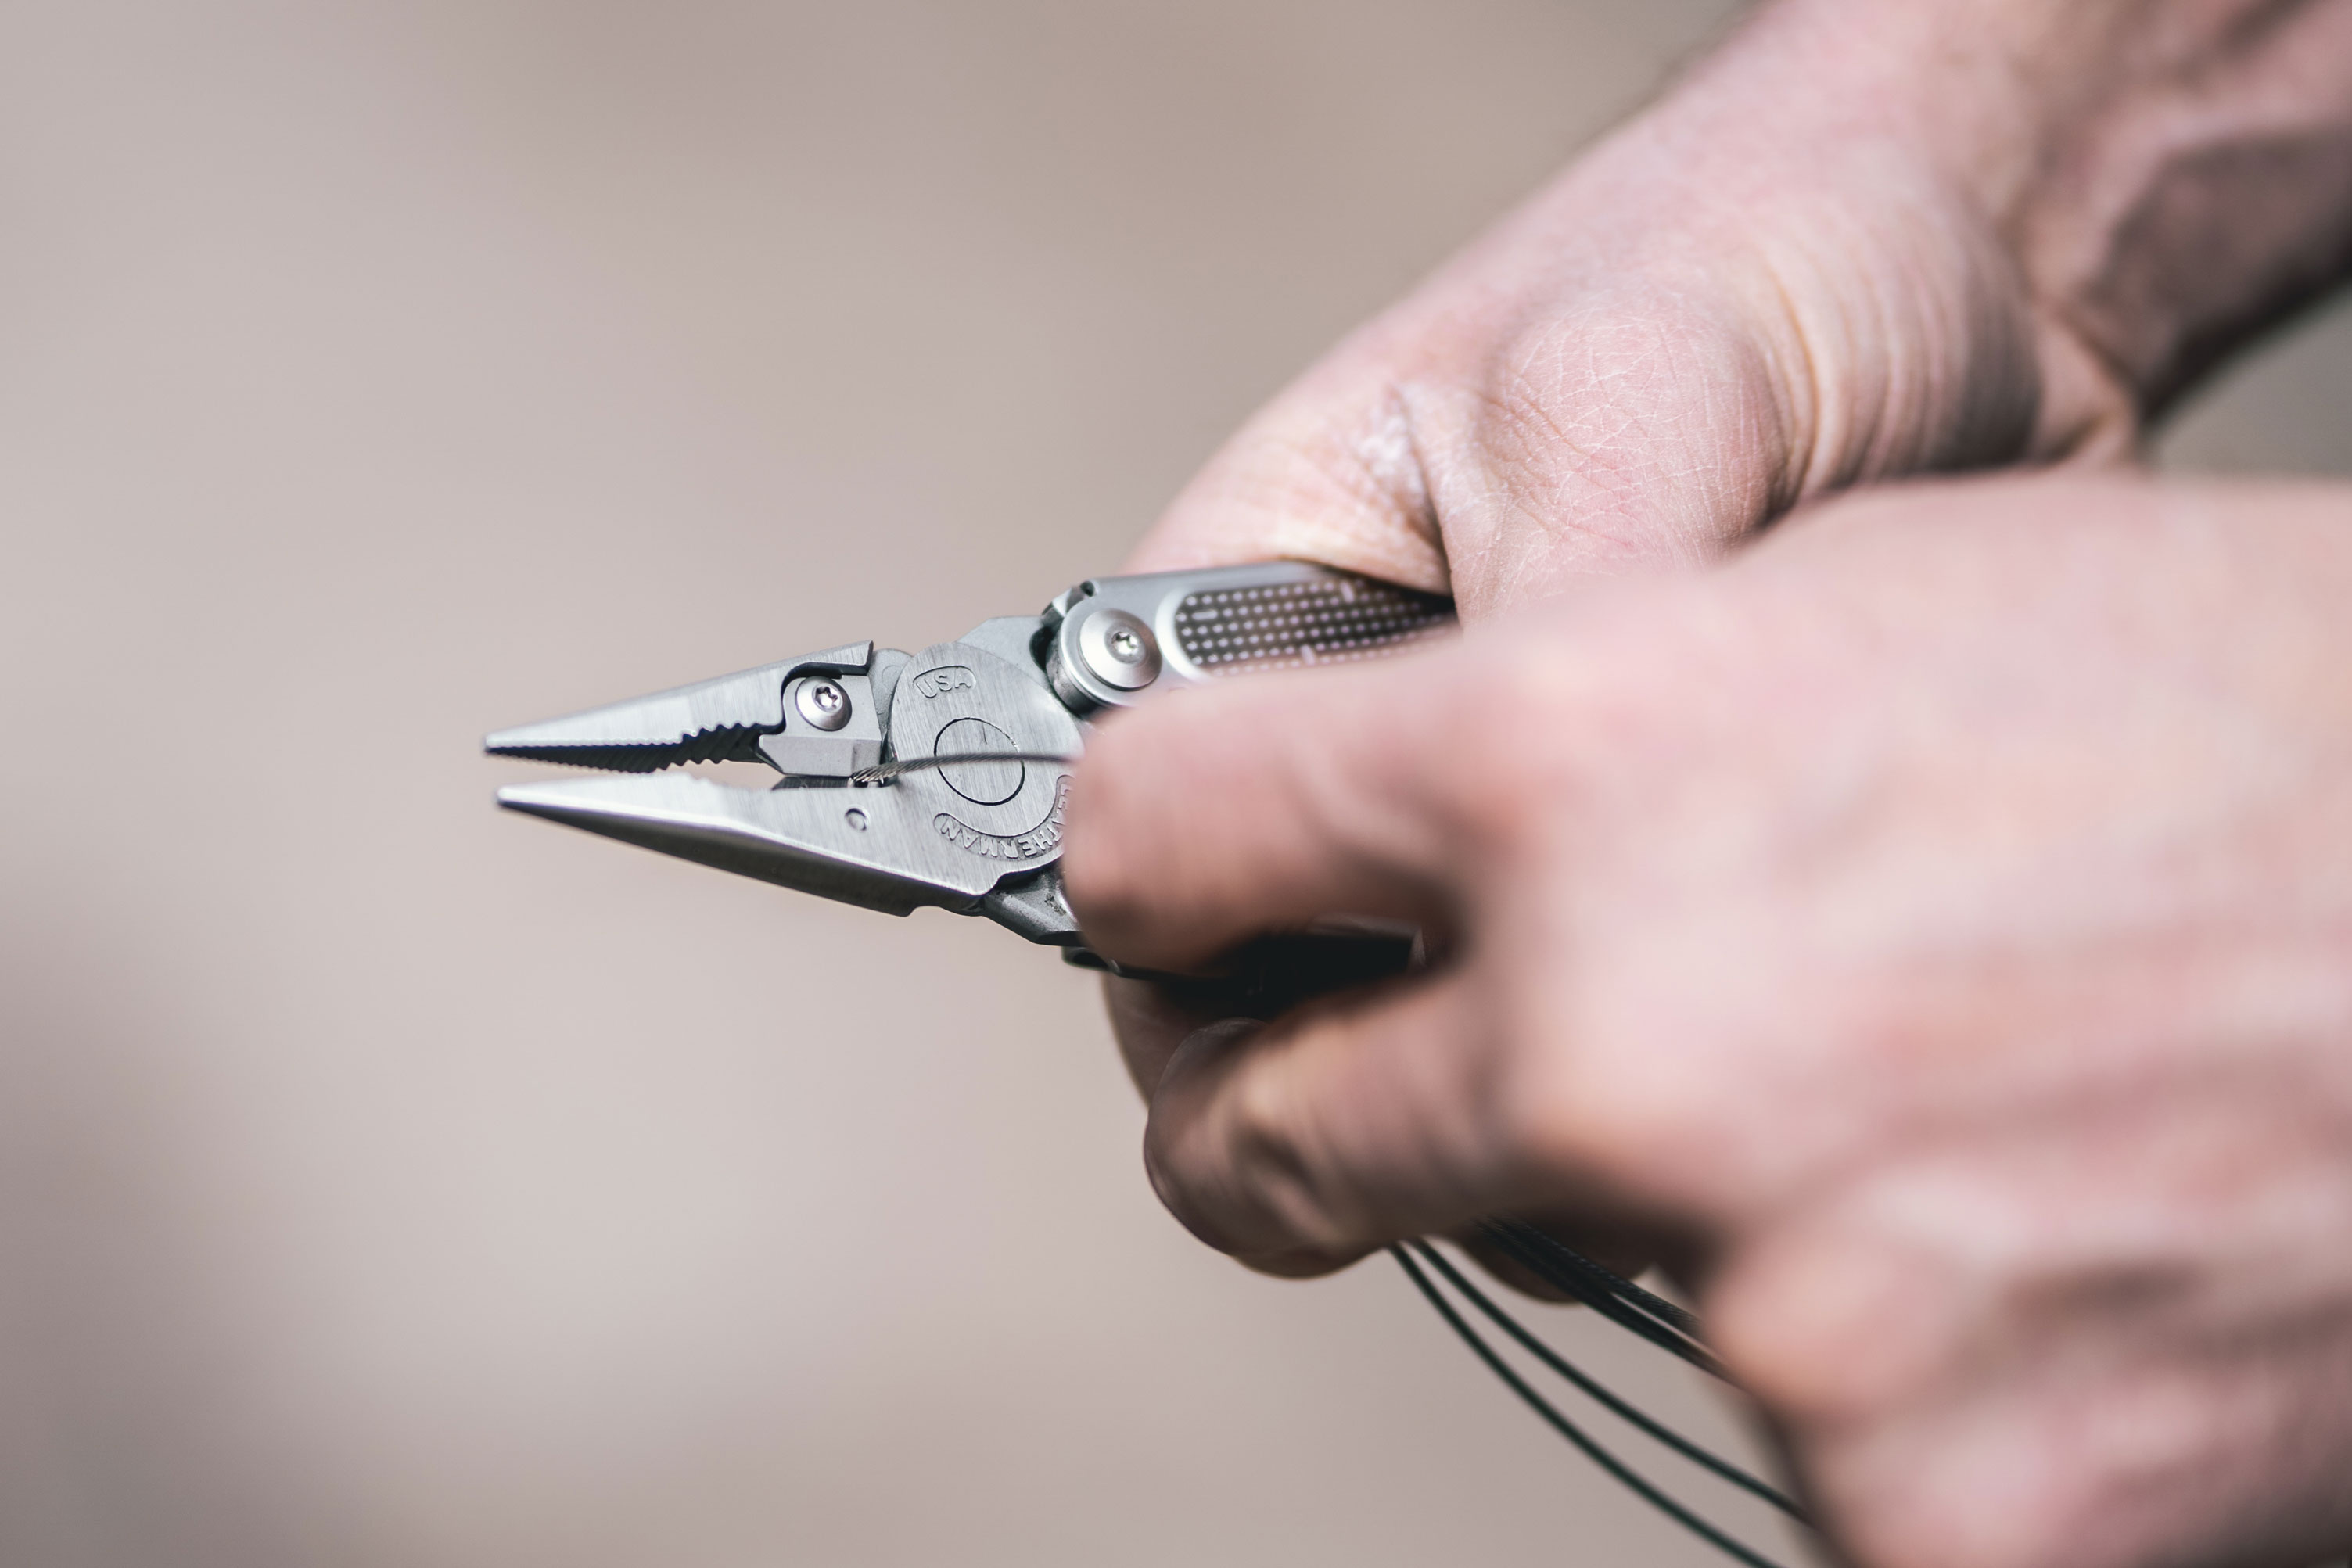 Leatherman Free wire cutter